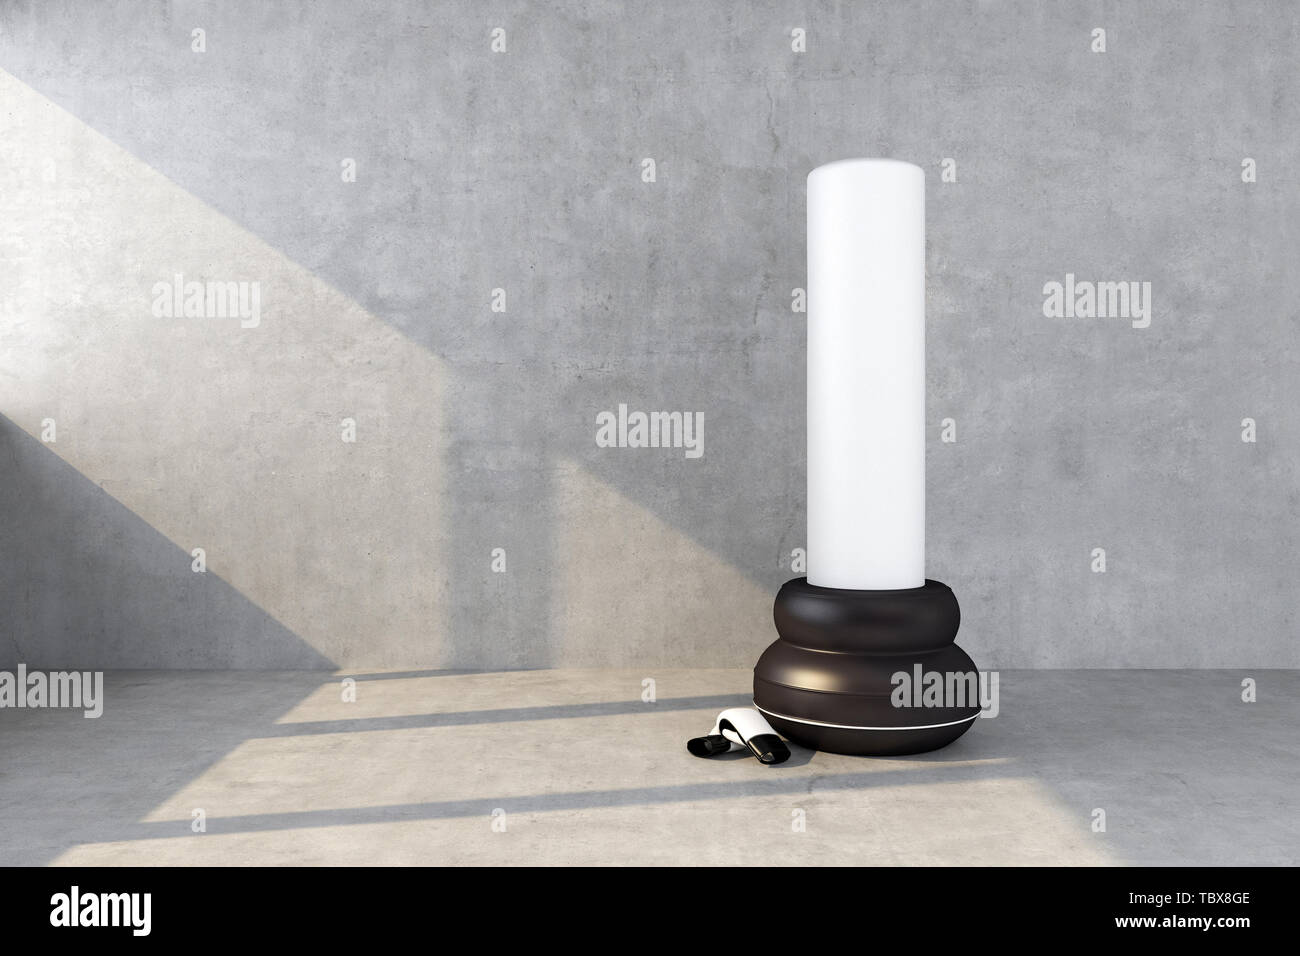 punching bag with a concrete wall. 3d rendering - Stock Image